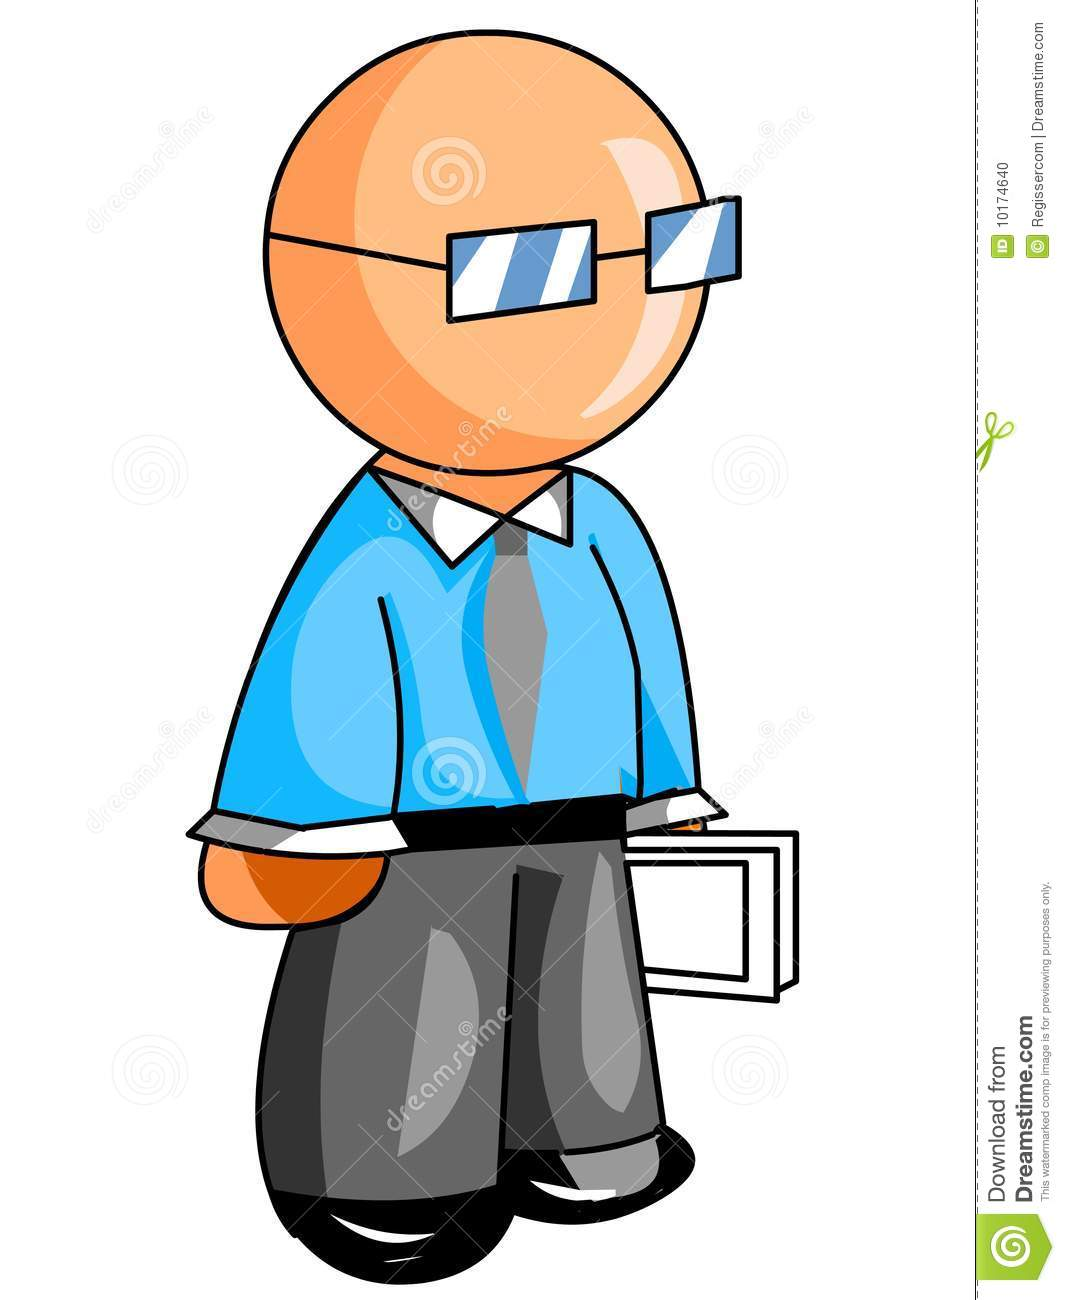 businessman-icon-10174640.jpg